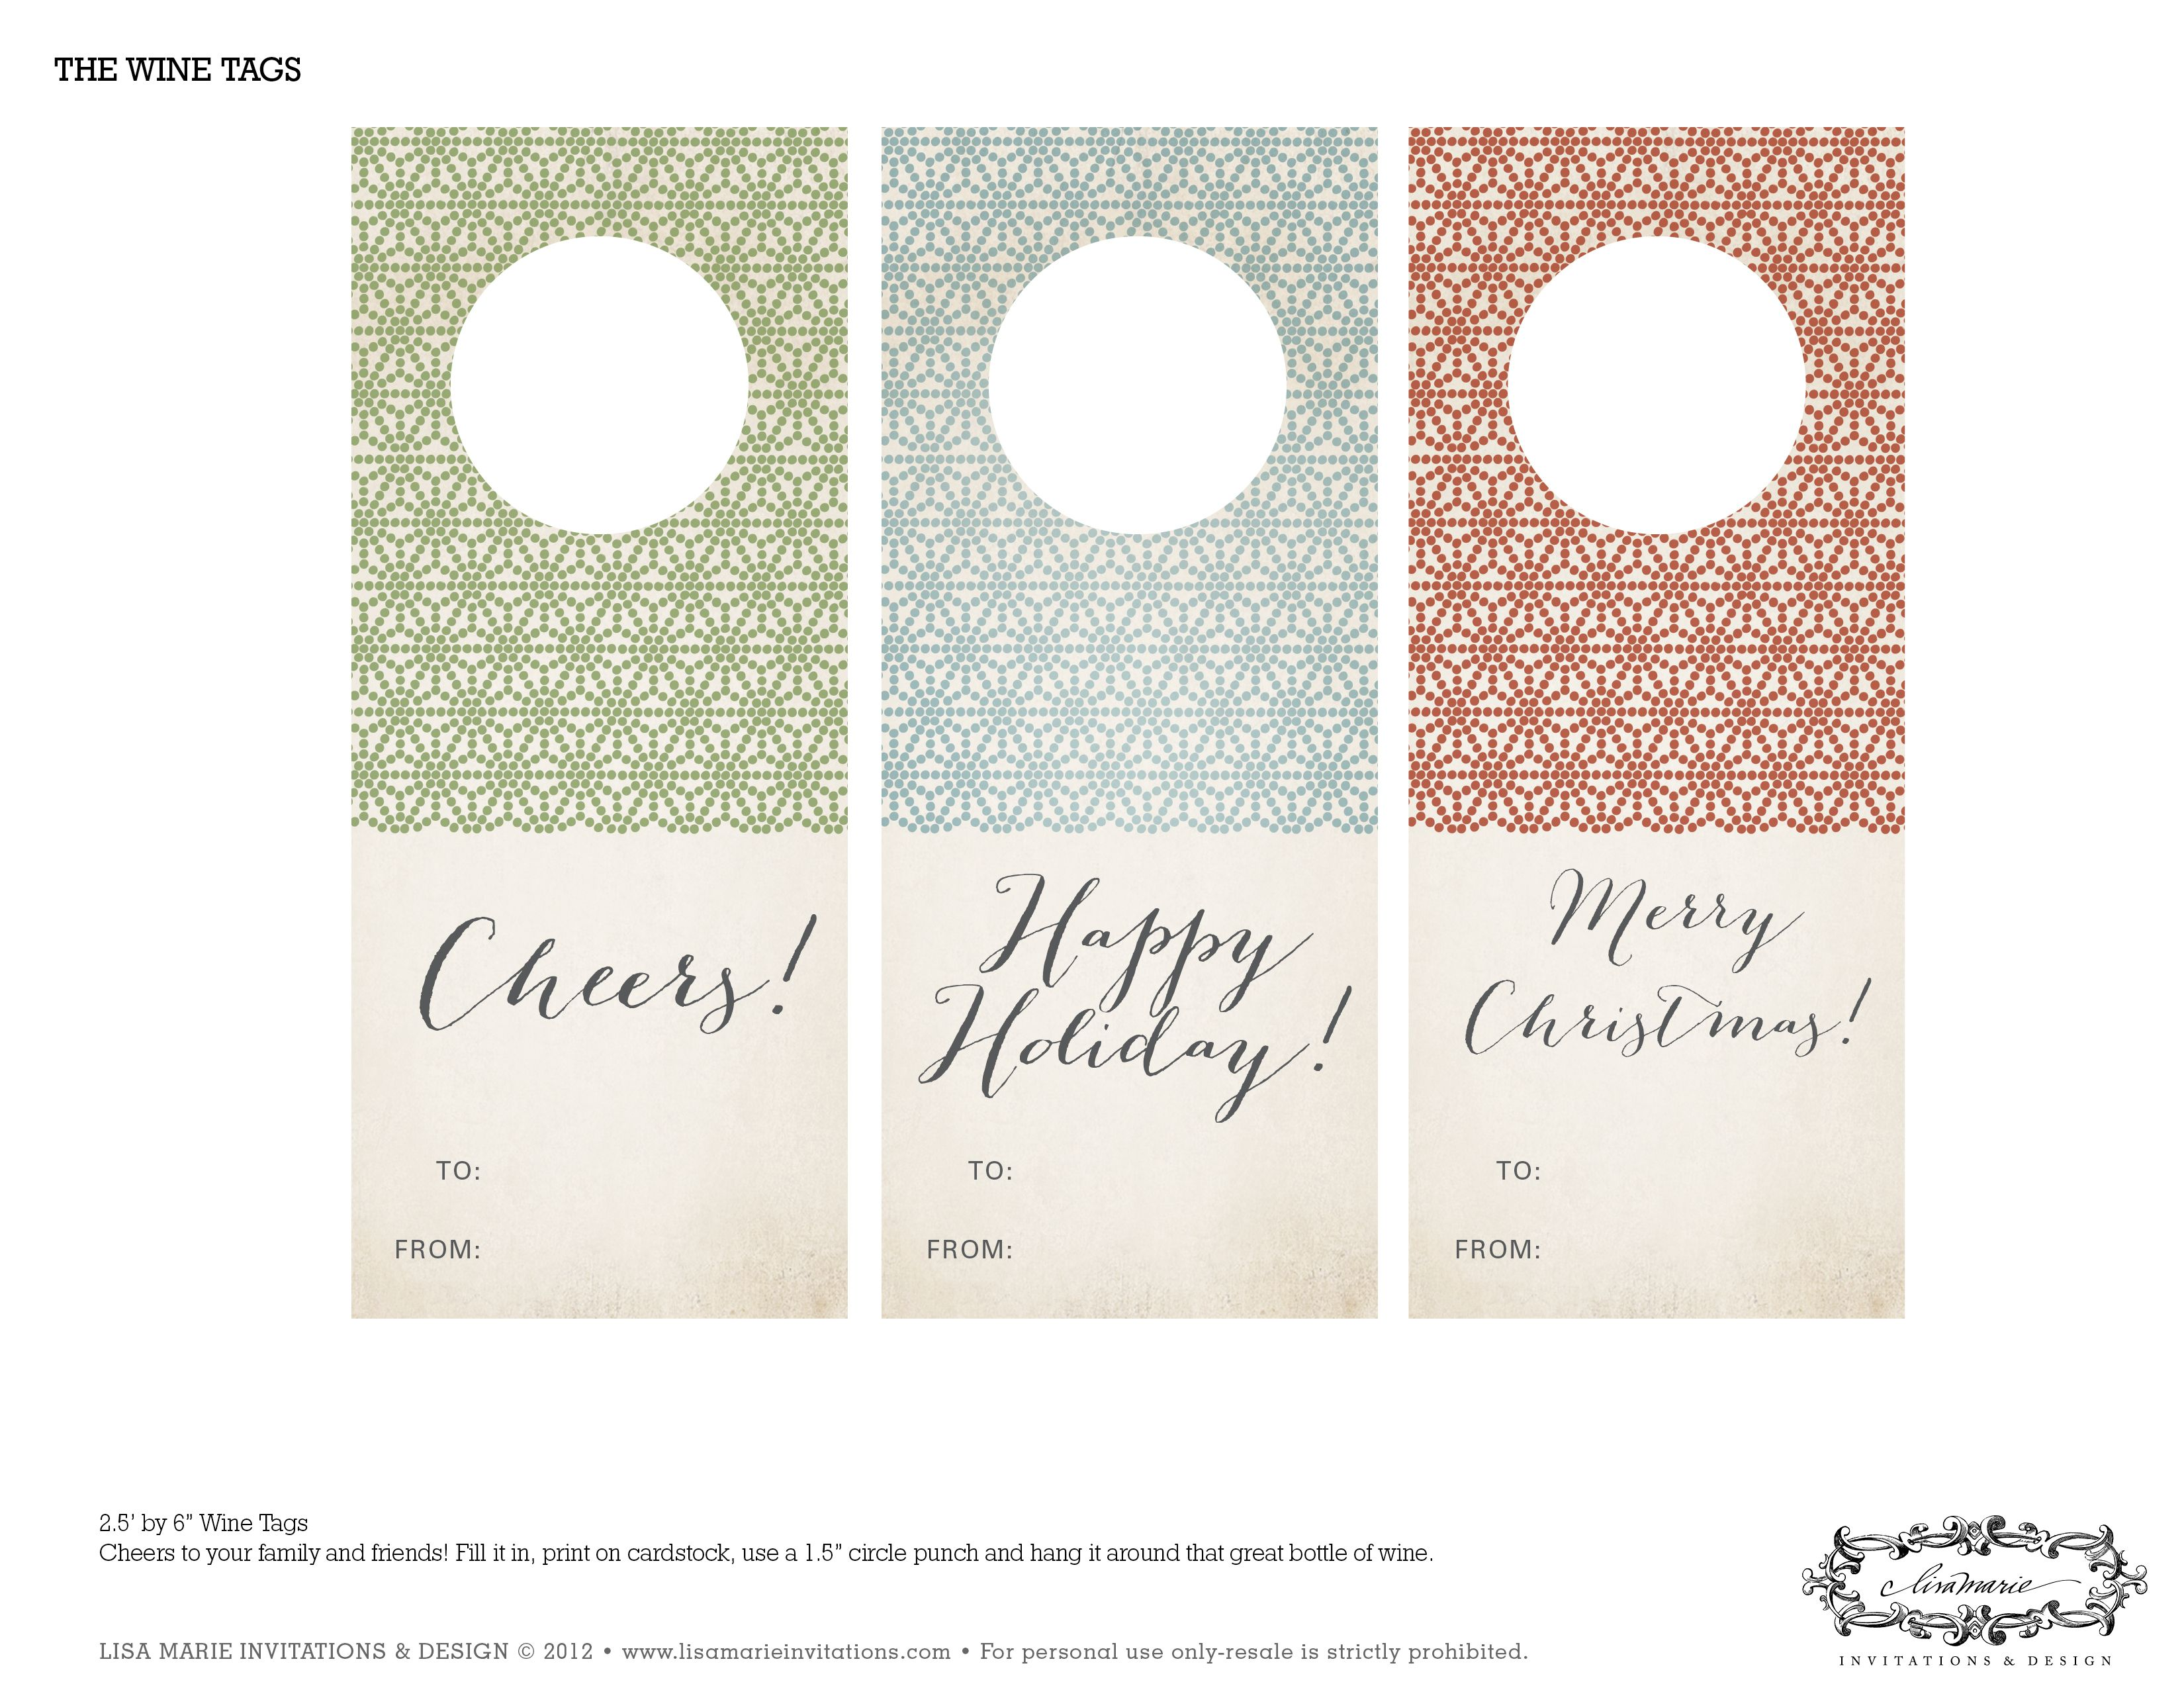 free holiday printables from lisa marie invitations and design etiquette pour bouteille bain. Black Bedroom Furniture Sets. Home Design Ideas